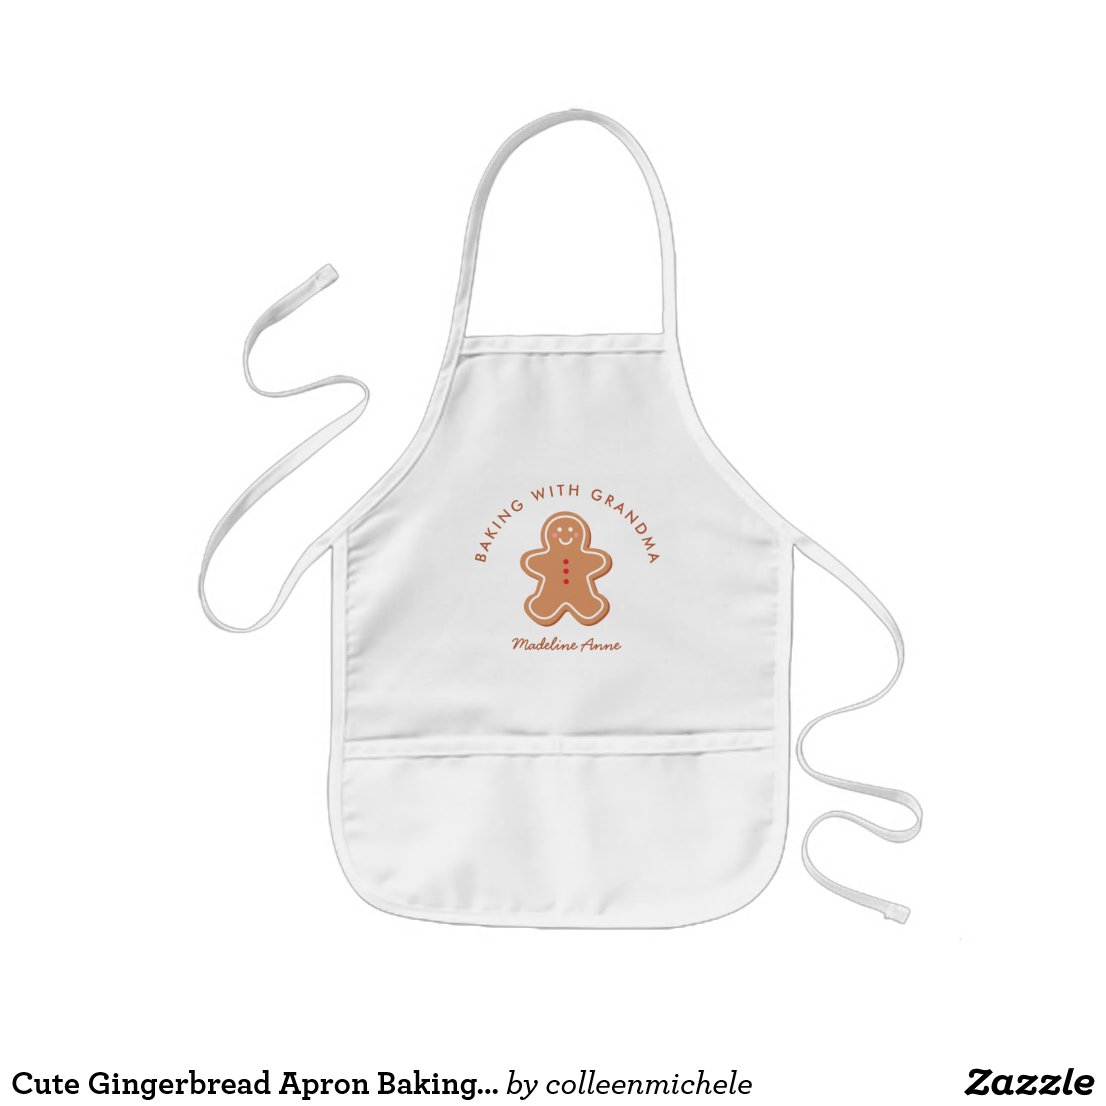 Cute Gingerbread Apron Baking with Grandma